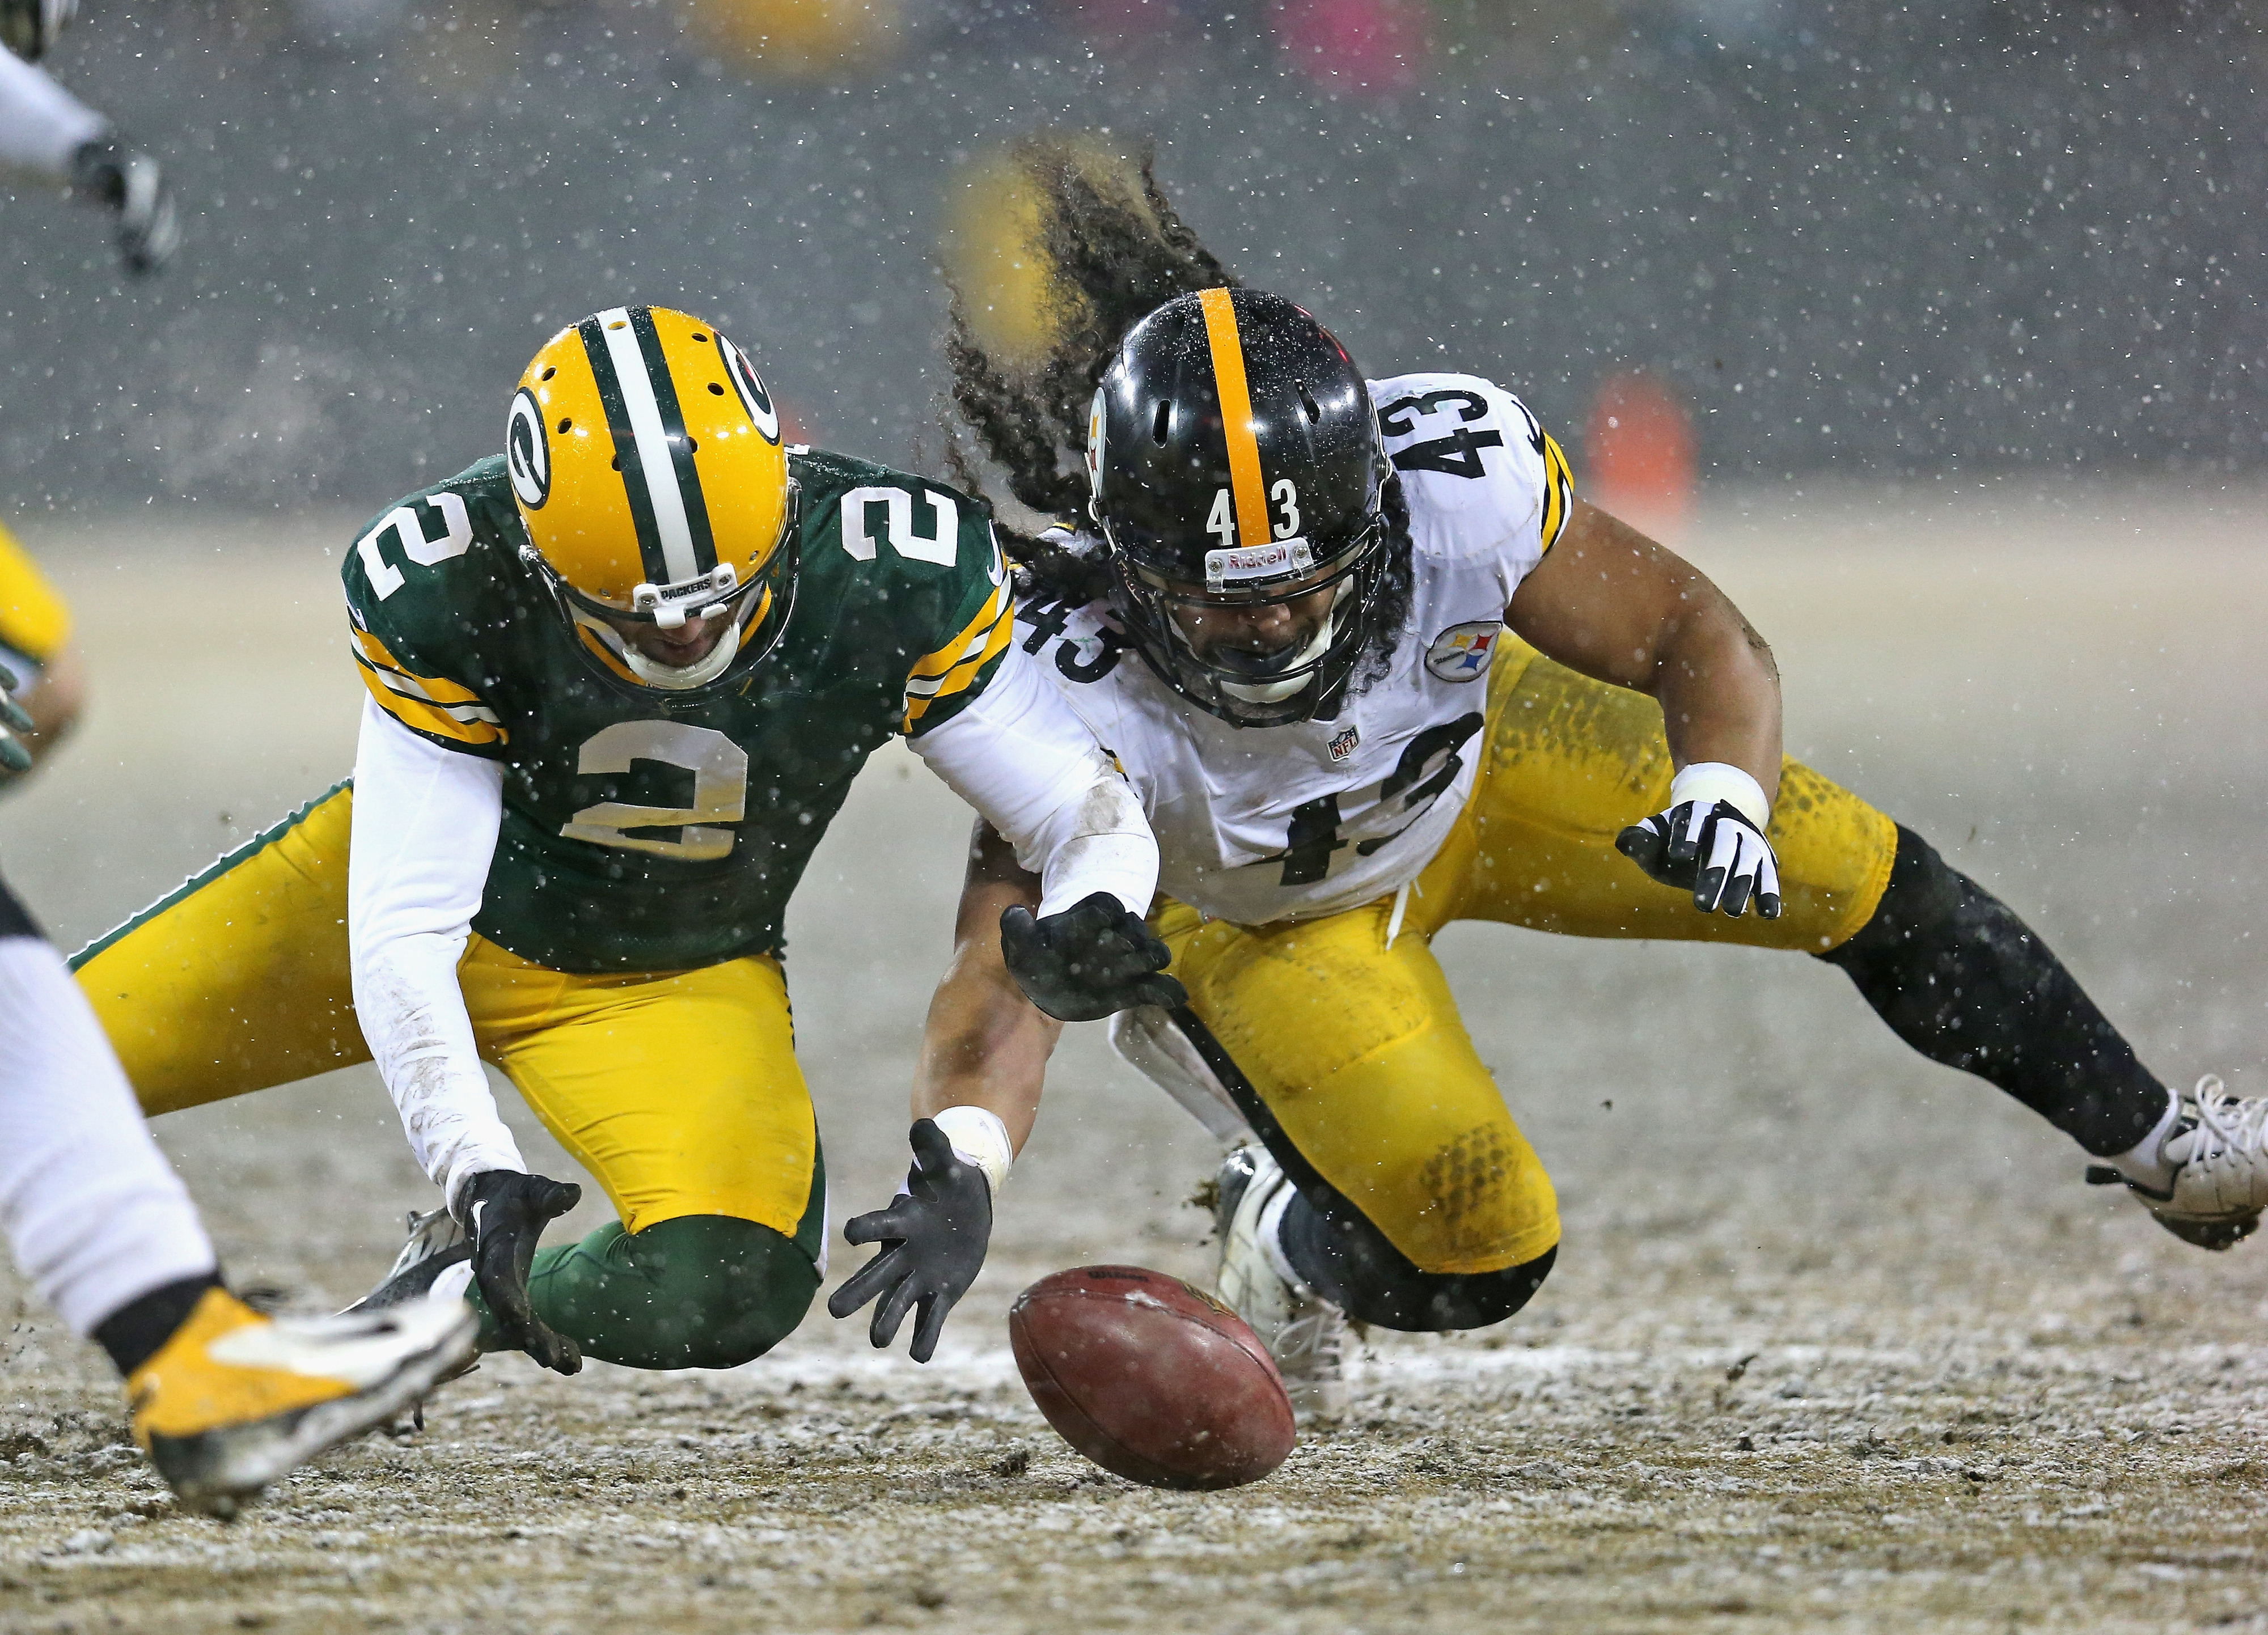 Troy Polamalu goes for a loose ball.